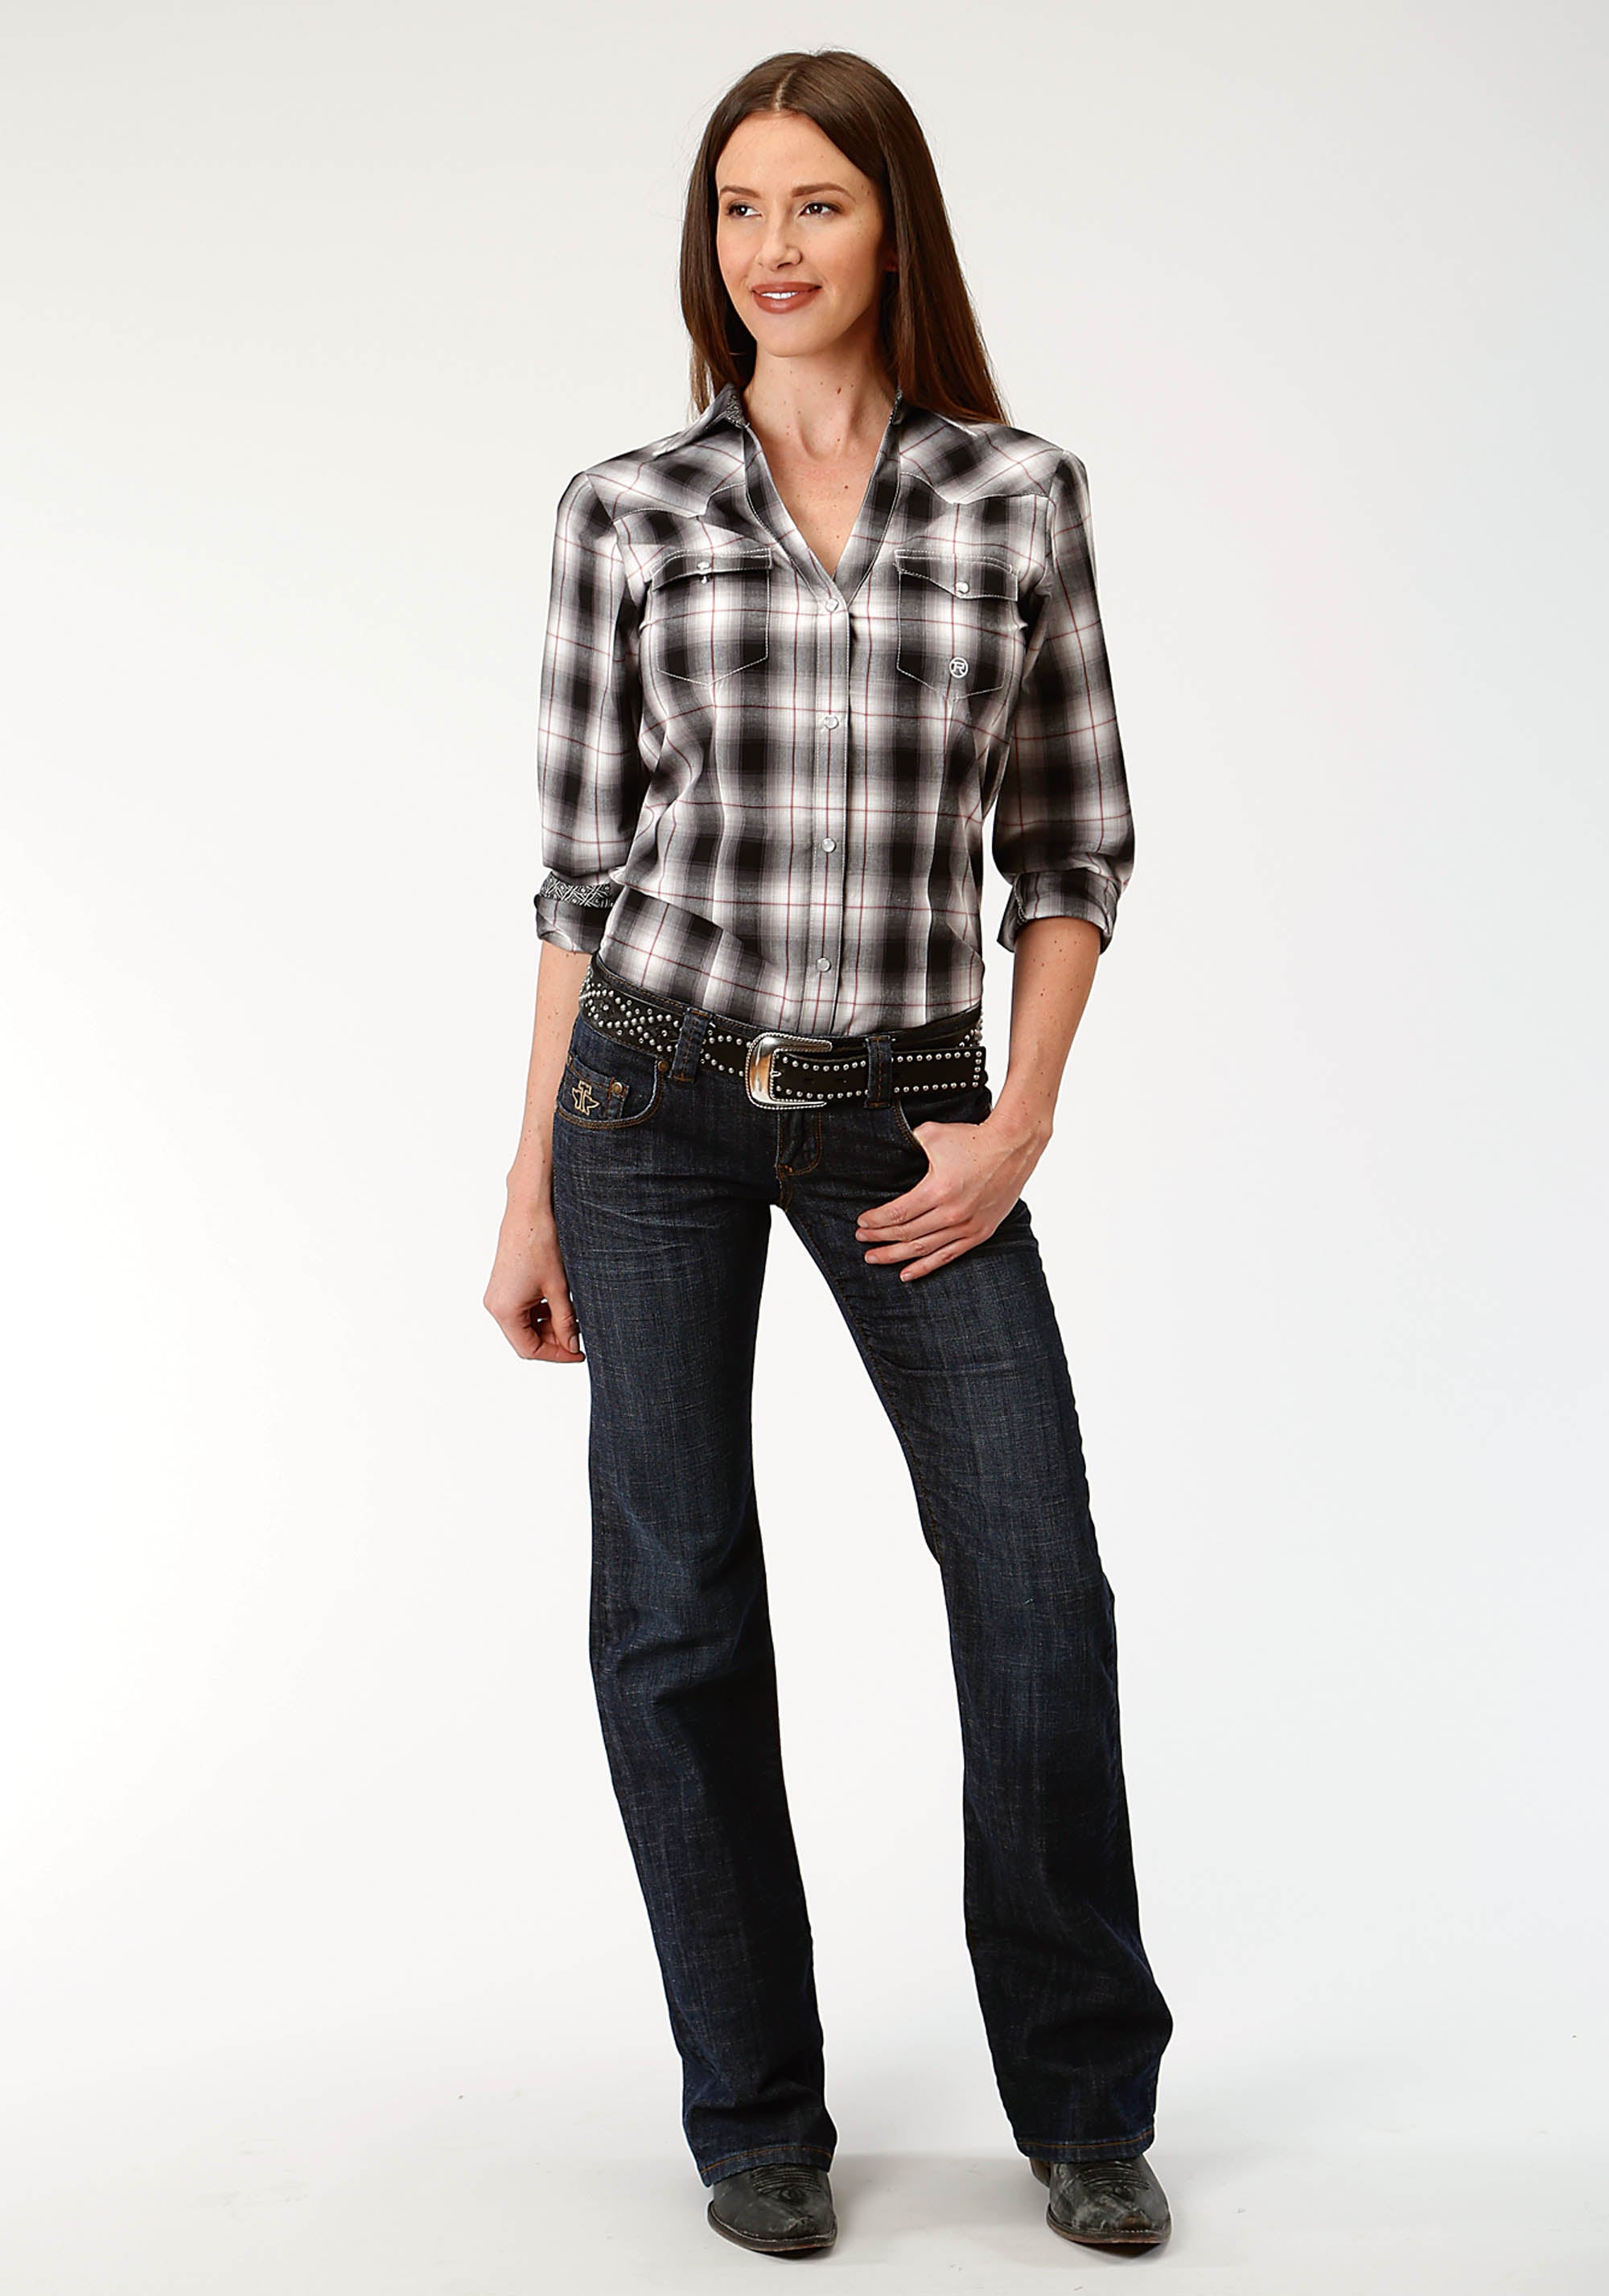 ROPER WOMENS BLACK 9615 VINTAGE PLAID LADIES AMARILLO COLLECTION- CHARCOAL EMBERS LONG SLEEVE